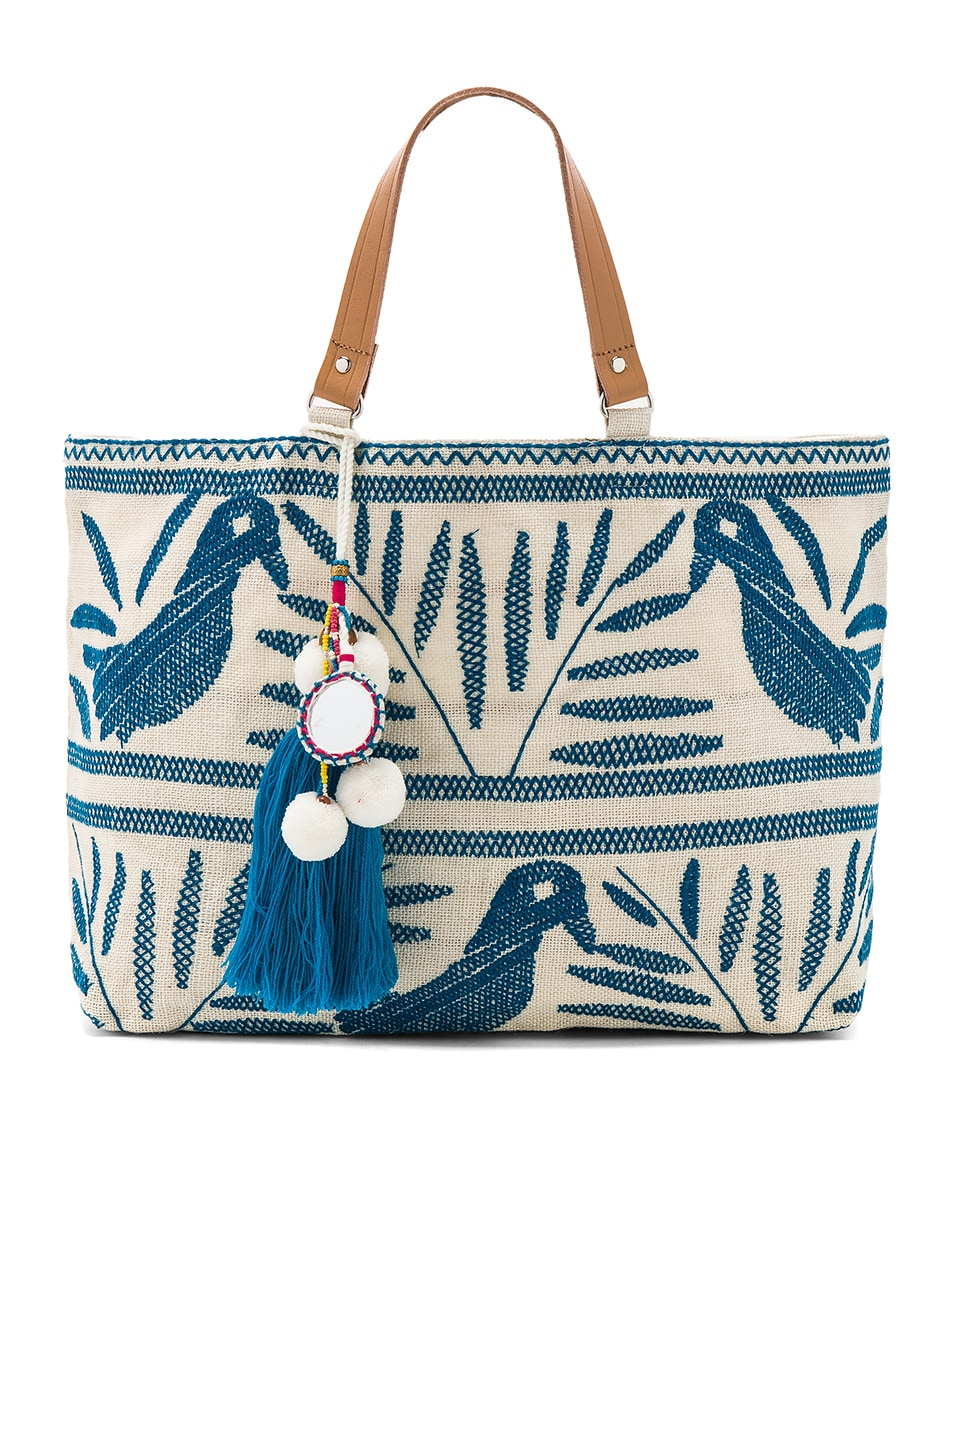 Star Mela Isi Embroidered Tote Bag in Ivory & Blue